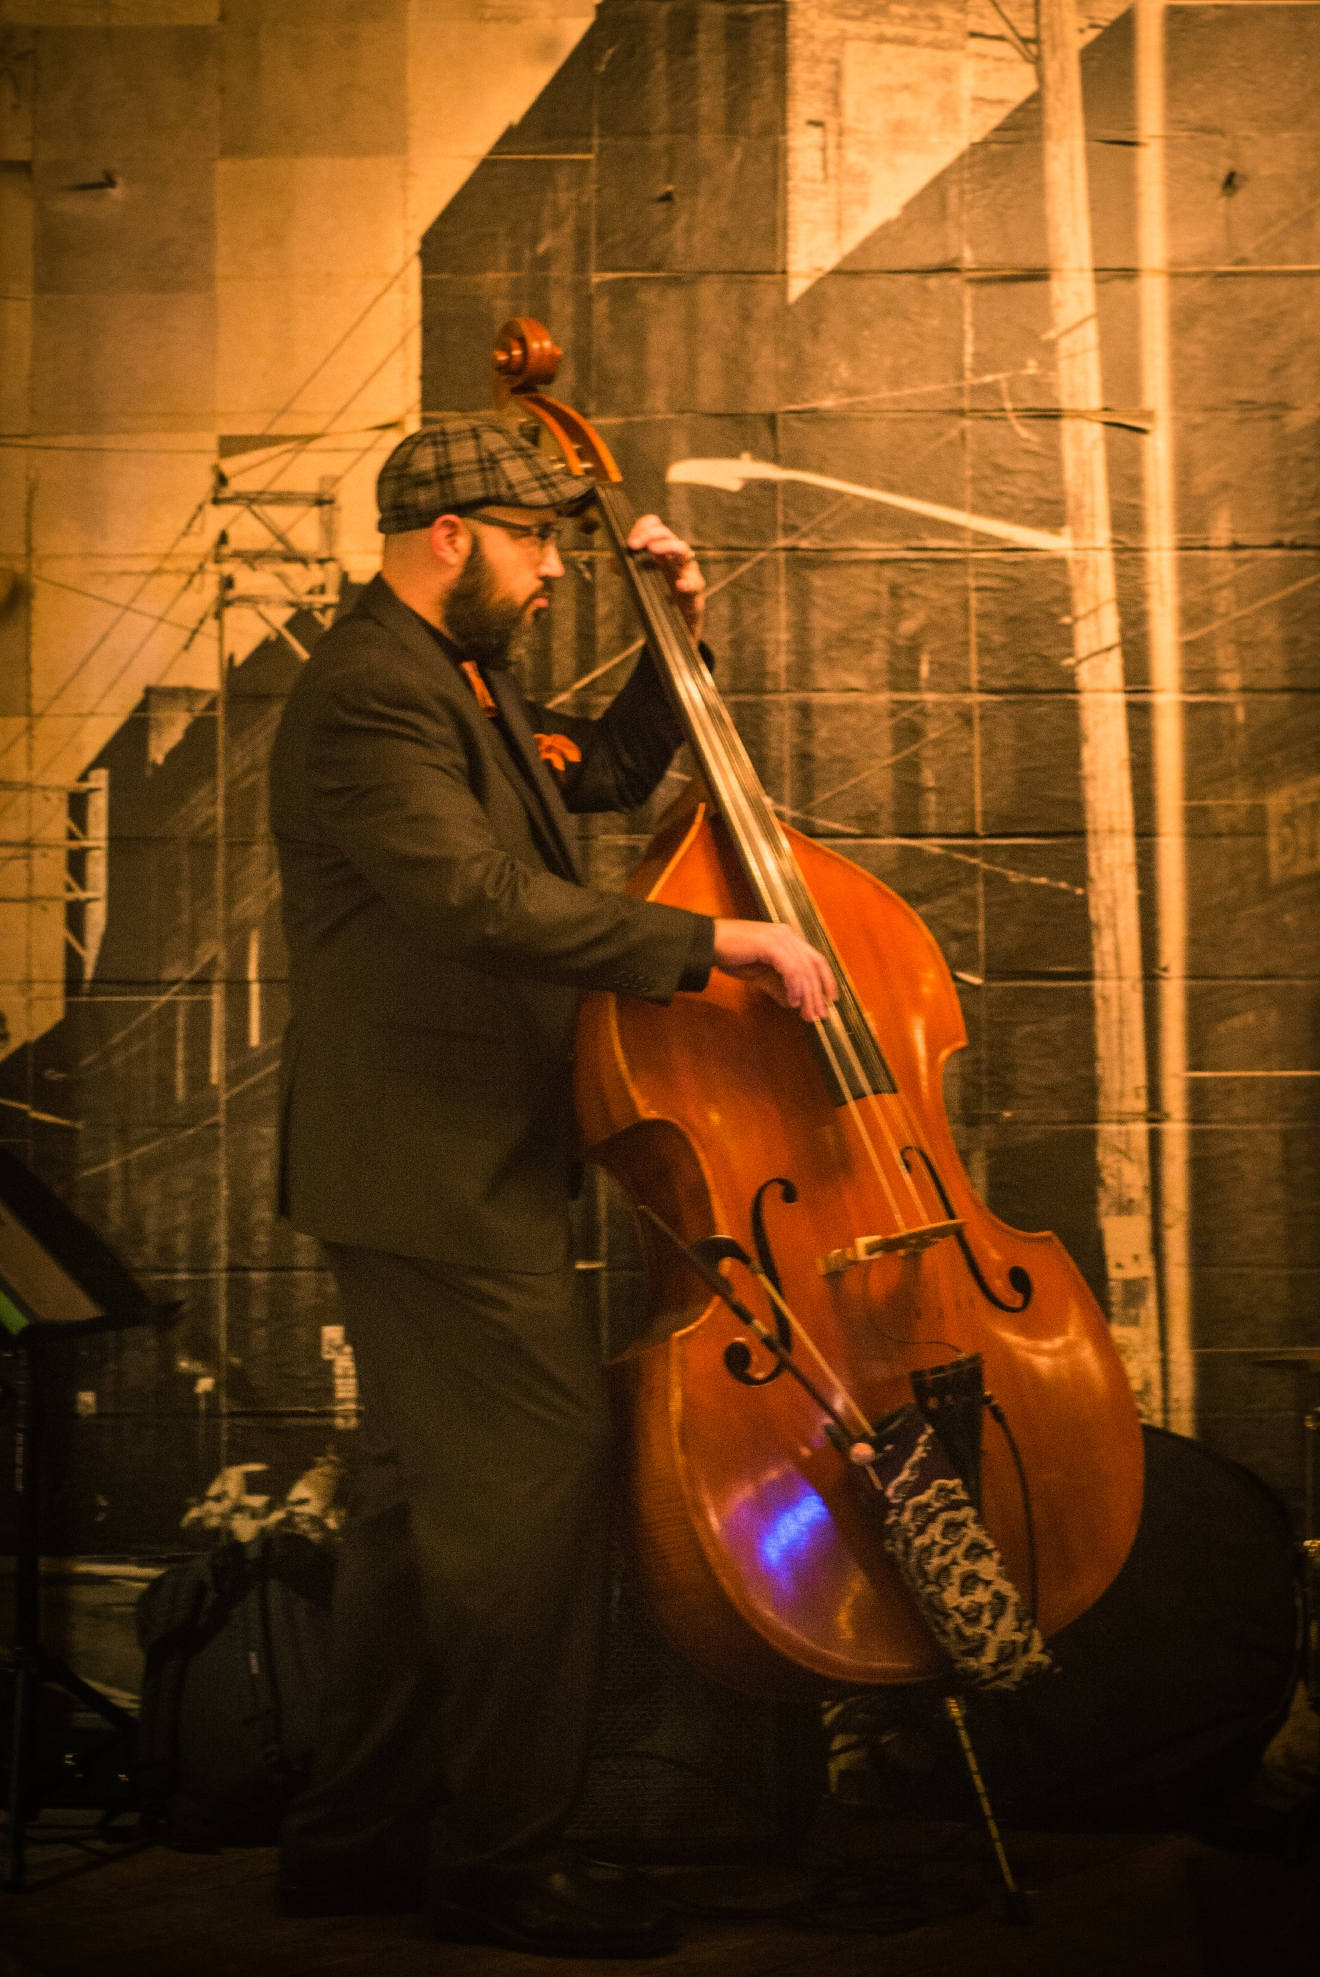 Listen to live jazz at Brass Tacks http://www.georgetownbrass.com/ every Friday and Saturday  night and play some shuffle board. (Image: Colin Bishop)